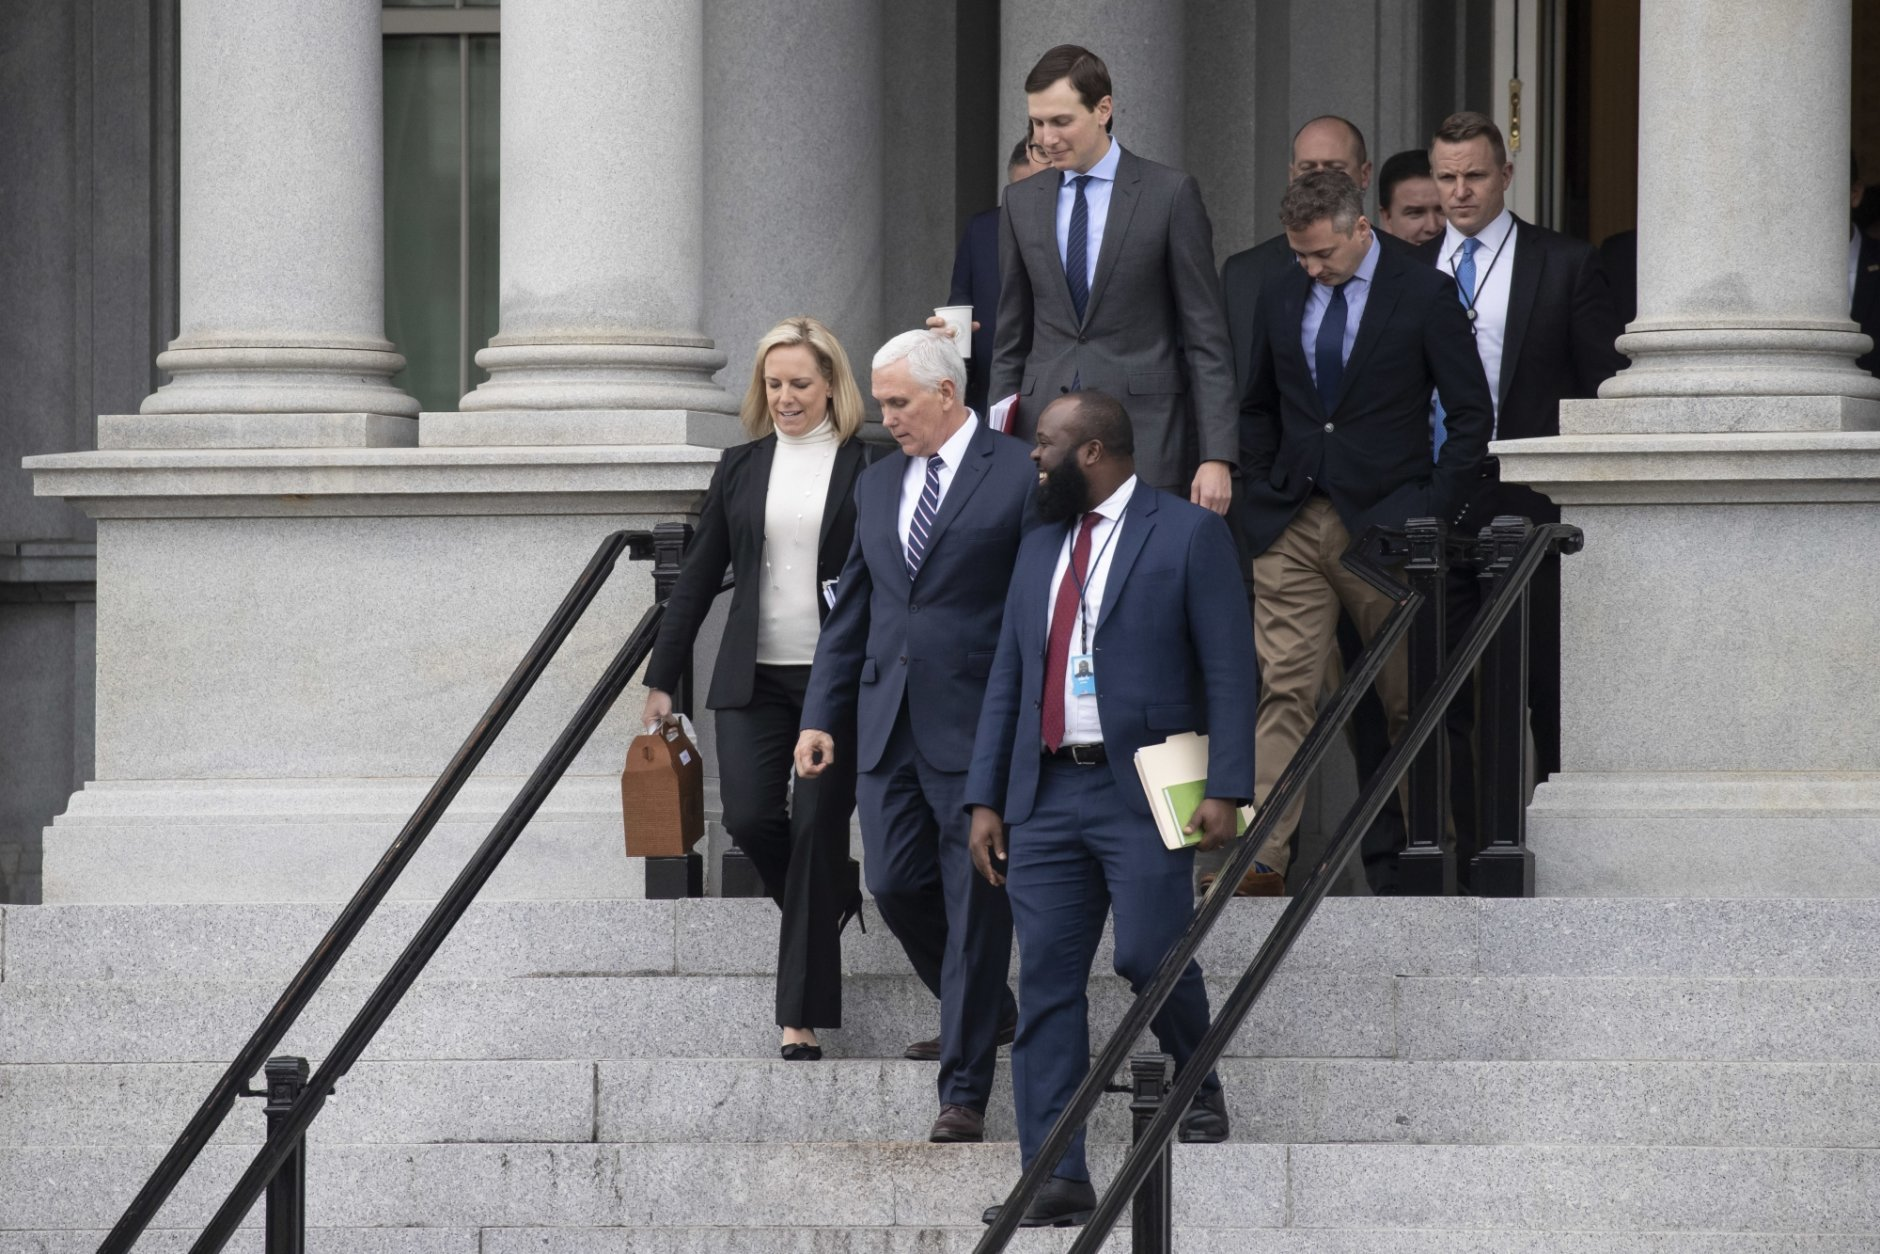 Kirstjen Nielsen, Mike Pence, Jared Kushner, Ja'Ron Smith